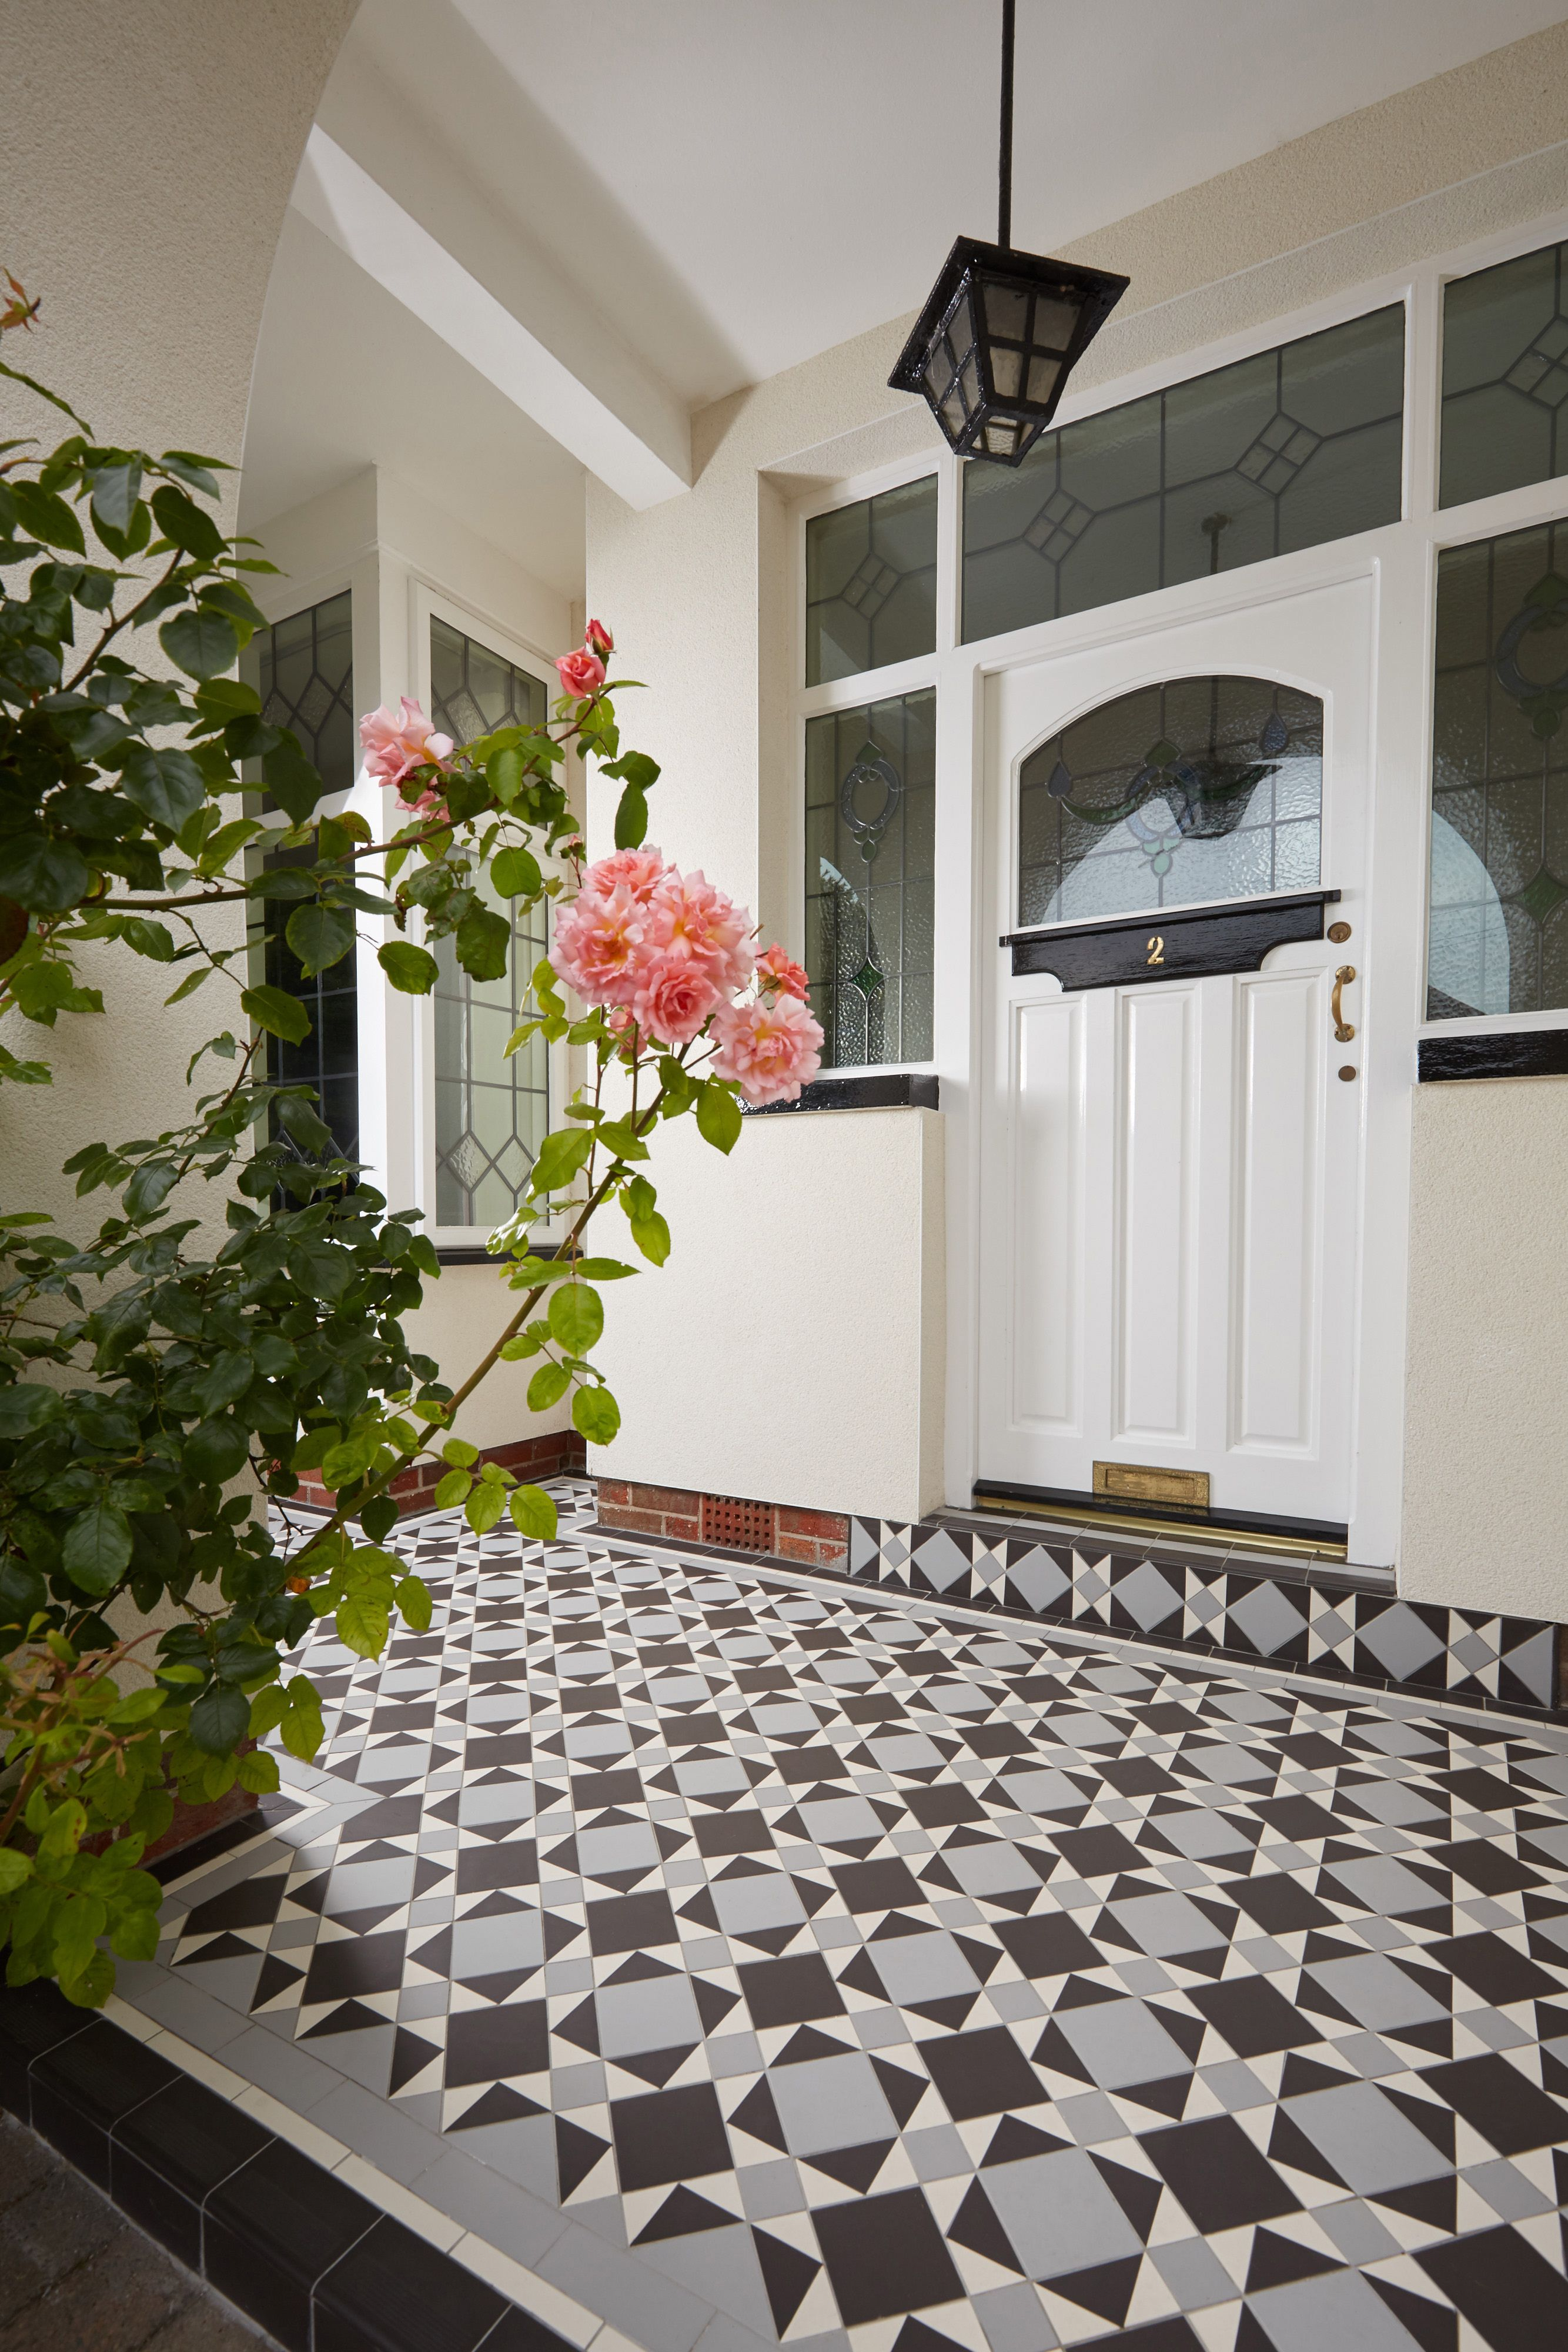 The lambeth pattern victorian floor tiles by original style uk the lambeth pattern victorian floor tiles by original style uk dailygadgetfo Gallery